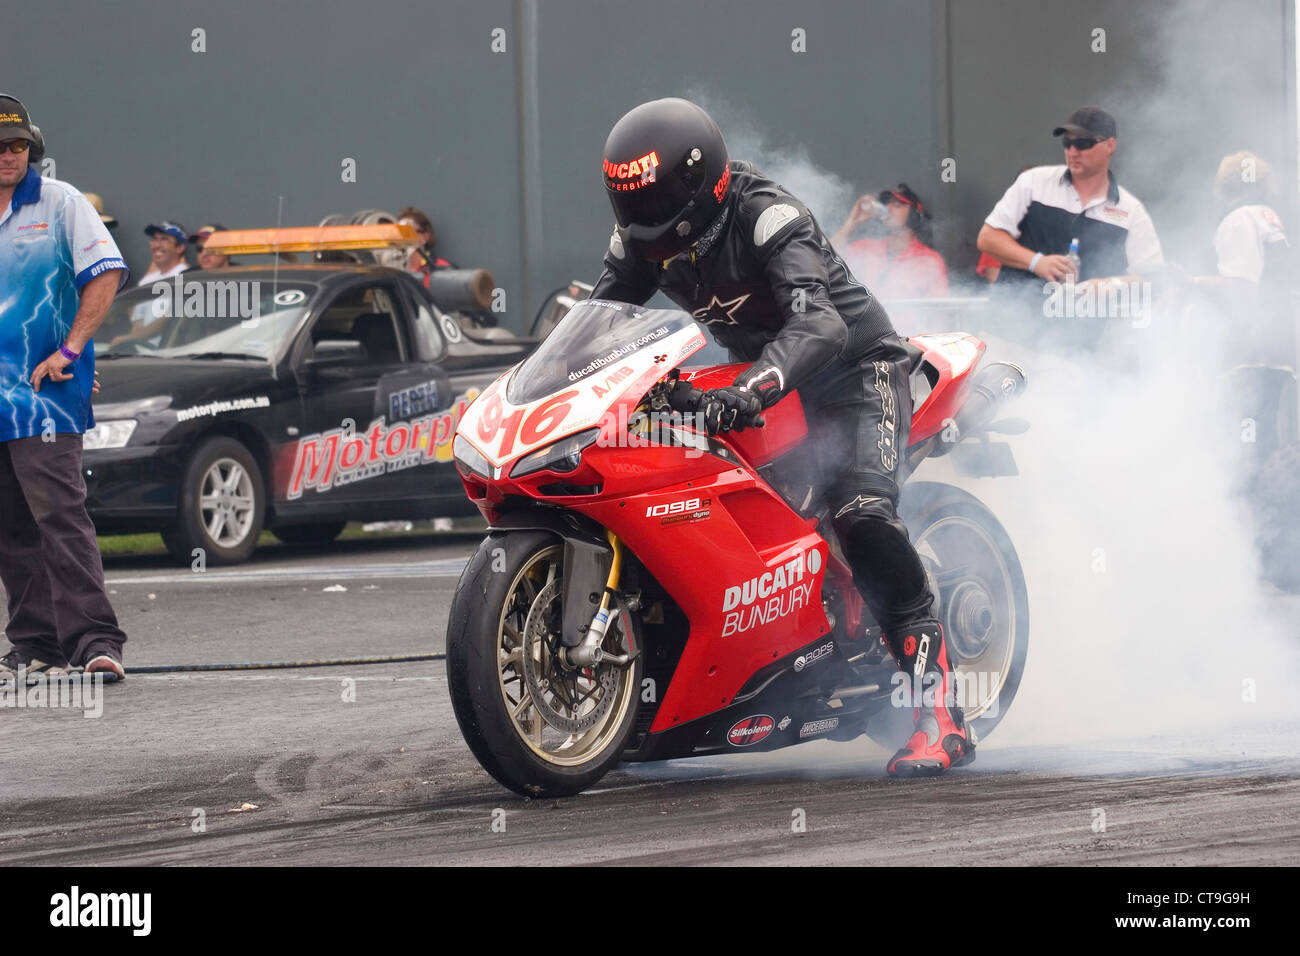 Ducati 1098R mounted drag racer performing a burnout to heat up the rear tyre before racing on the quarter mile. - Stock Image